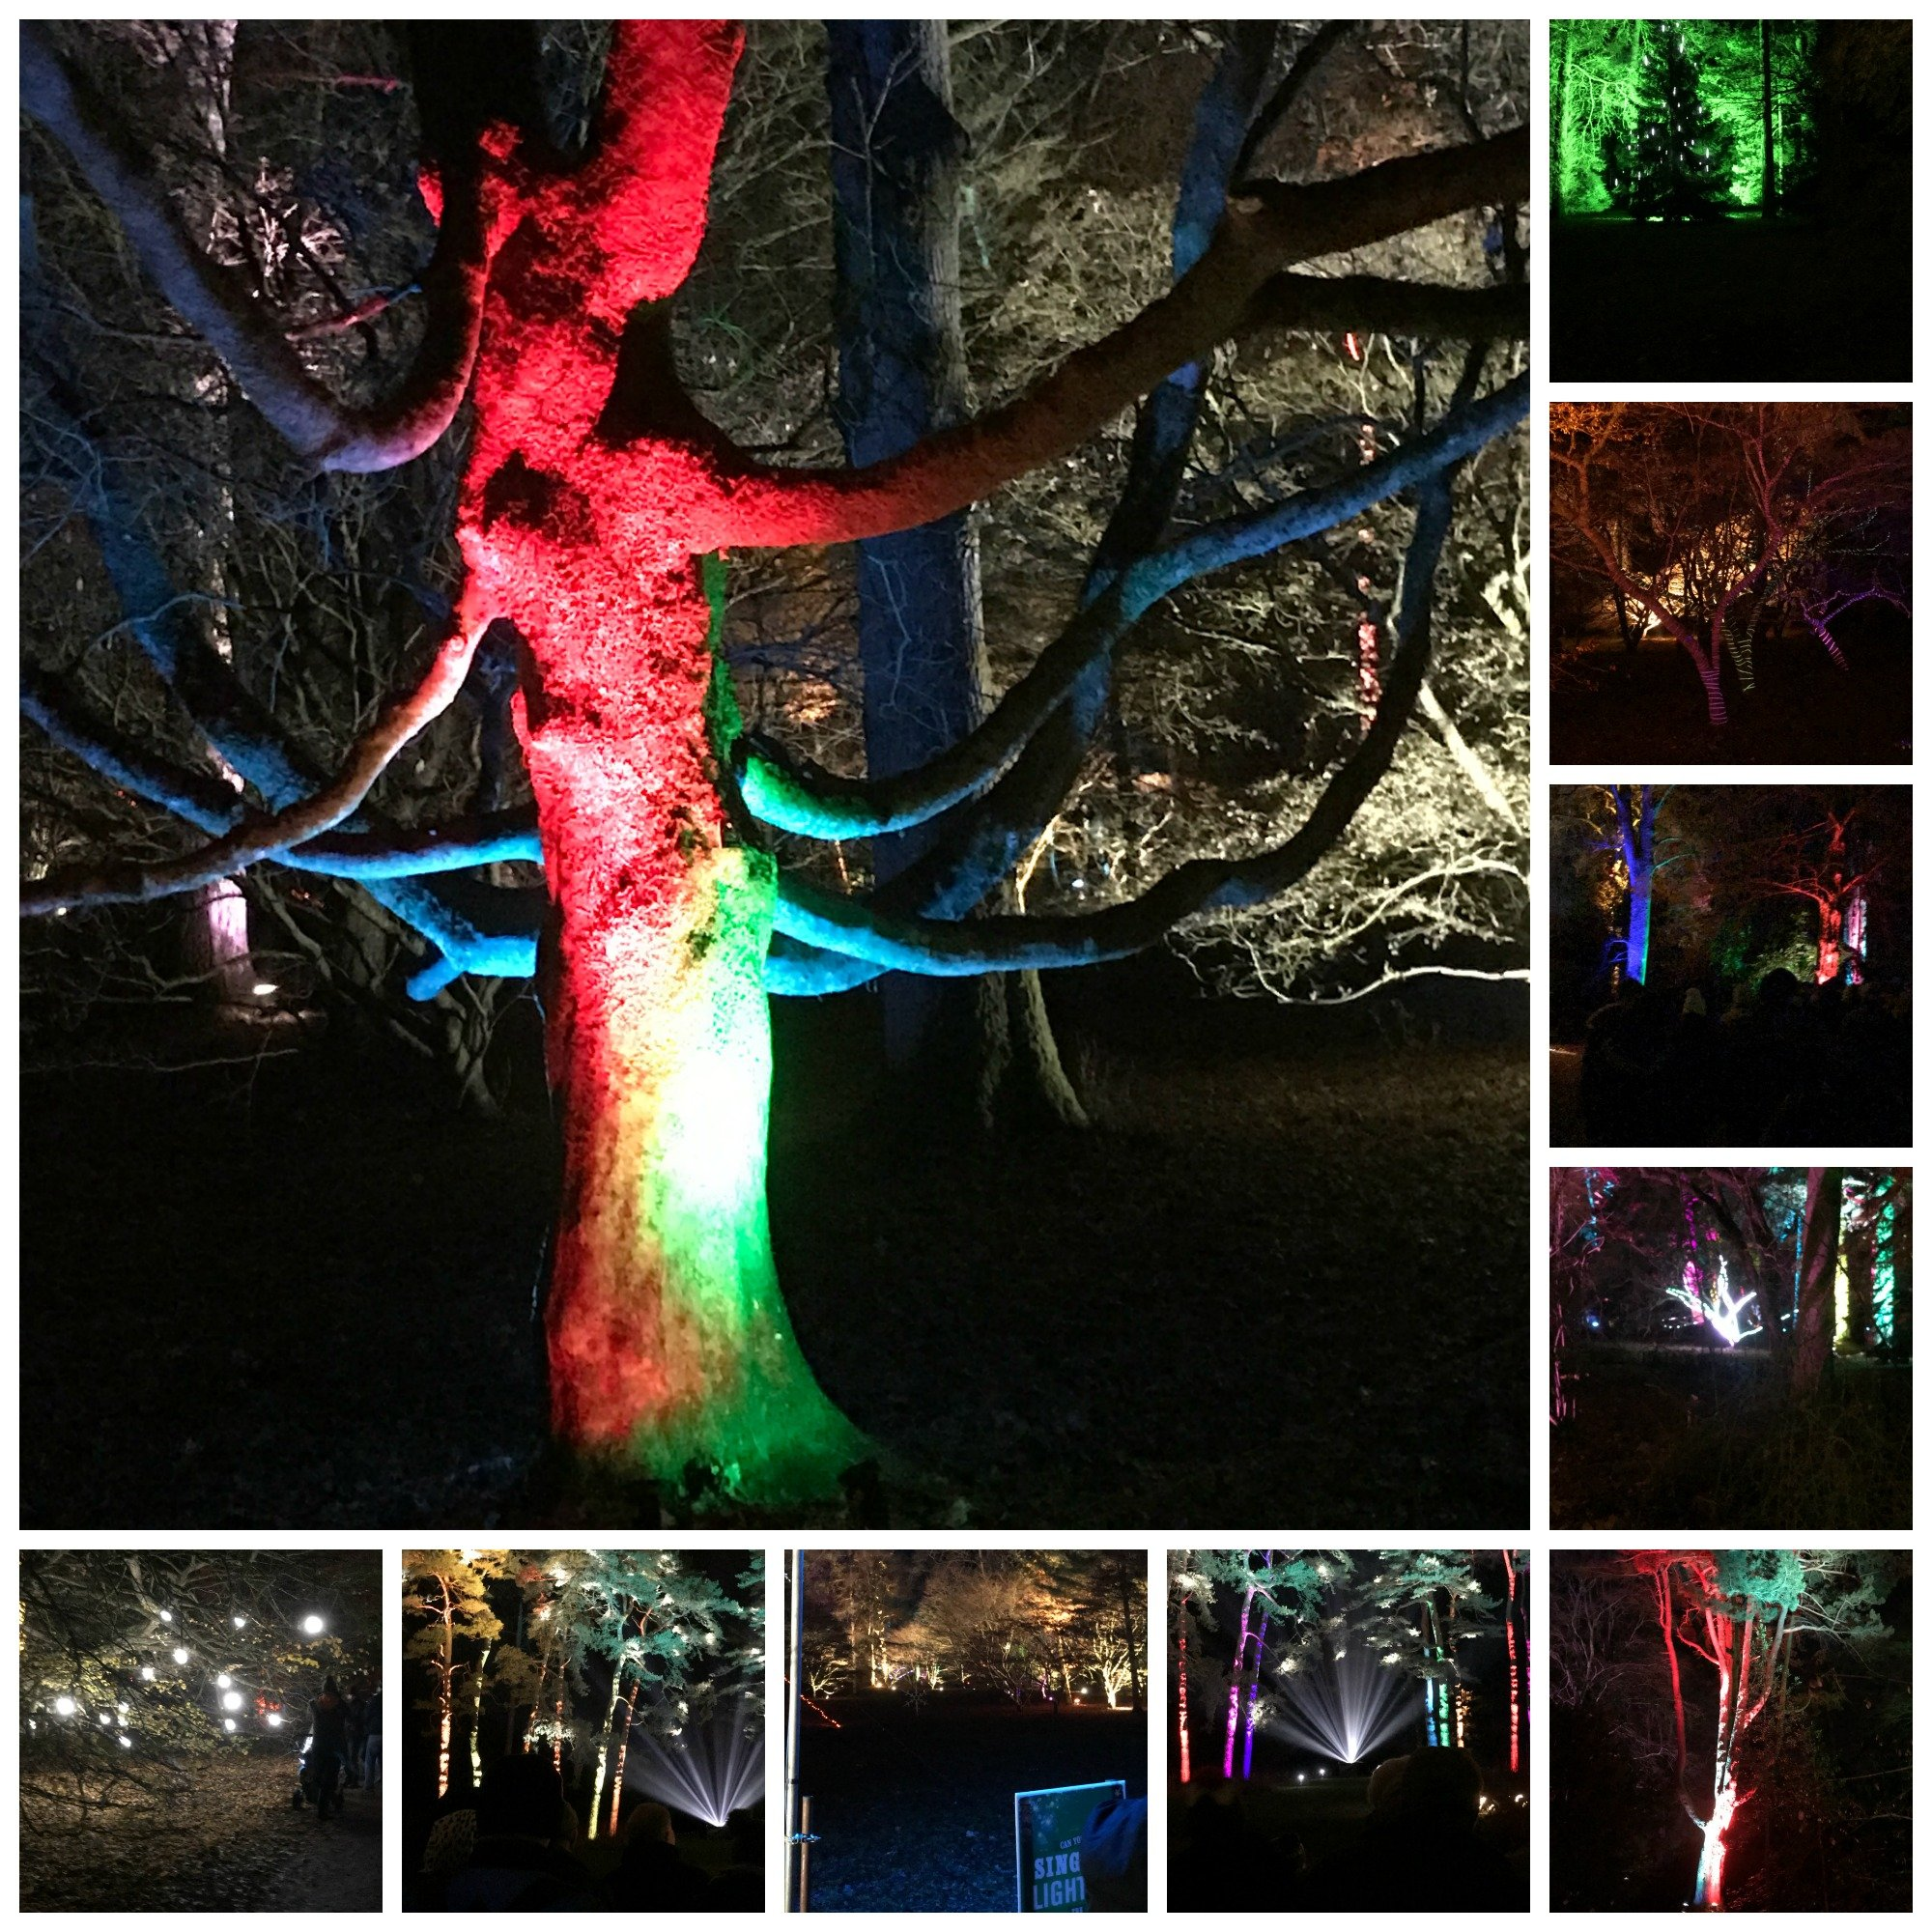 Beautifullly lit scenes in the trees at Westonbirt Arboretum Enchanted Christmas Trail 2017